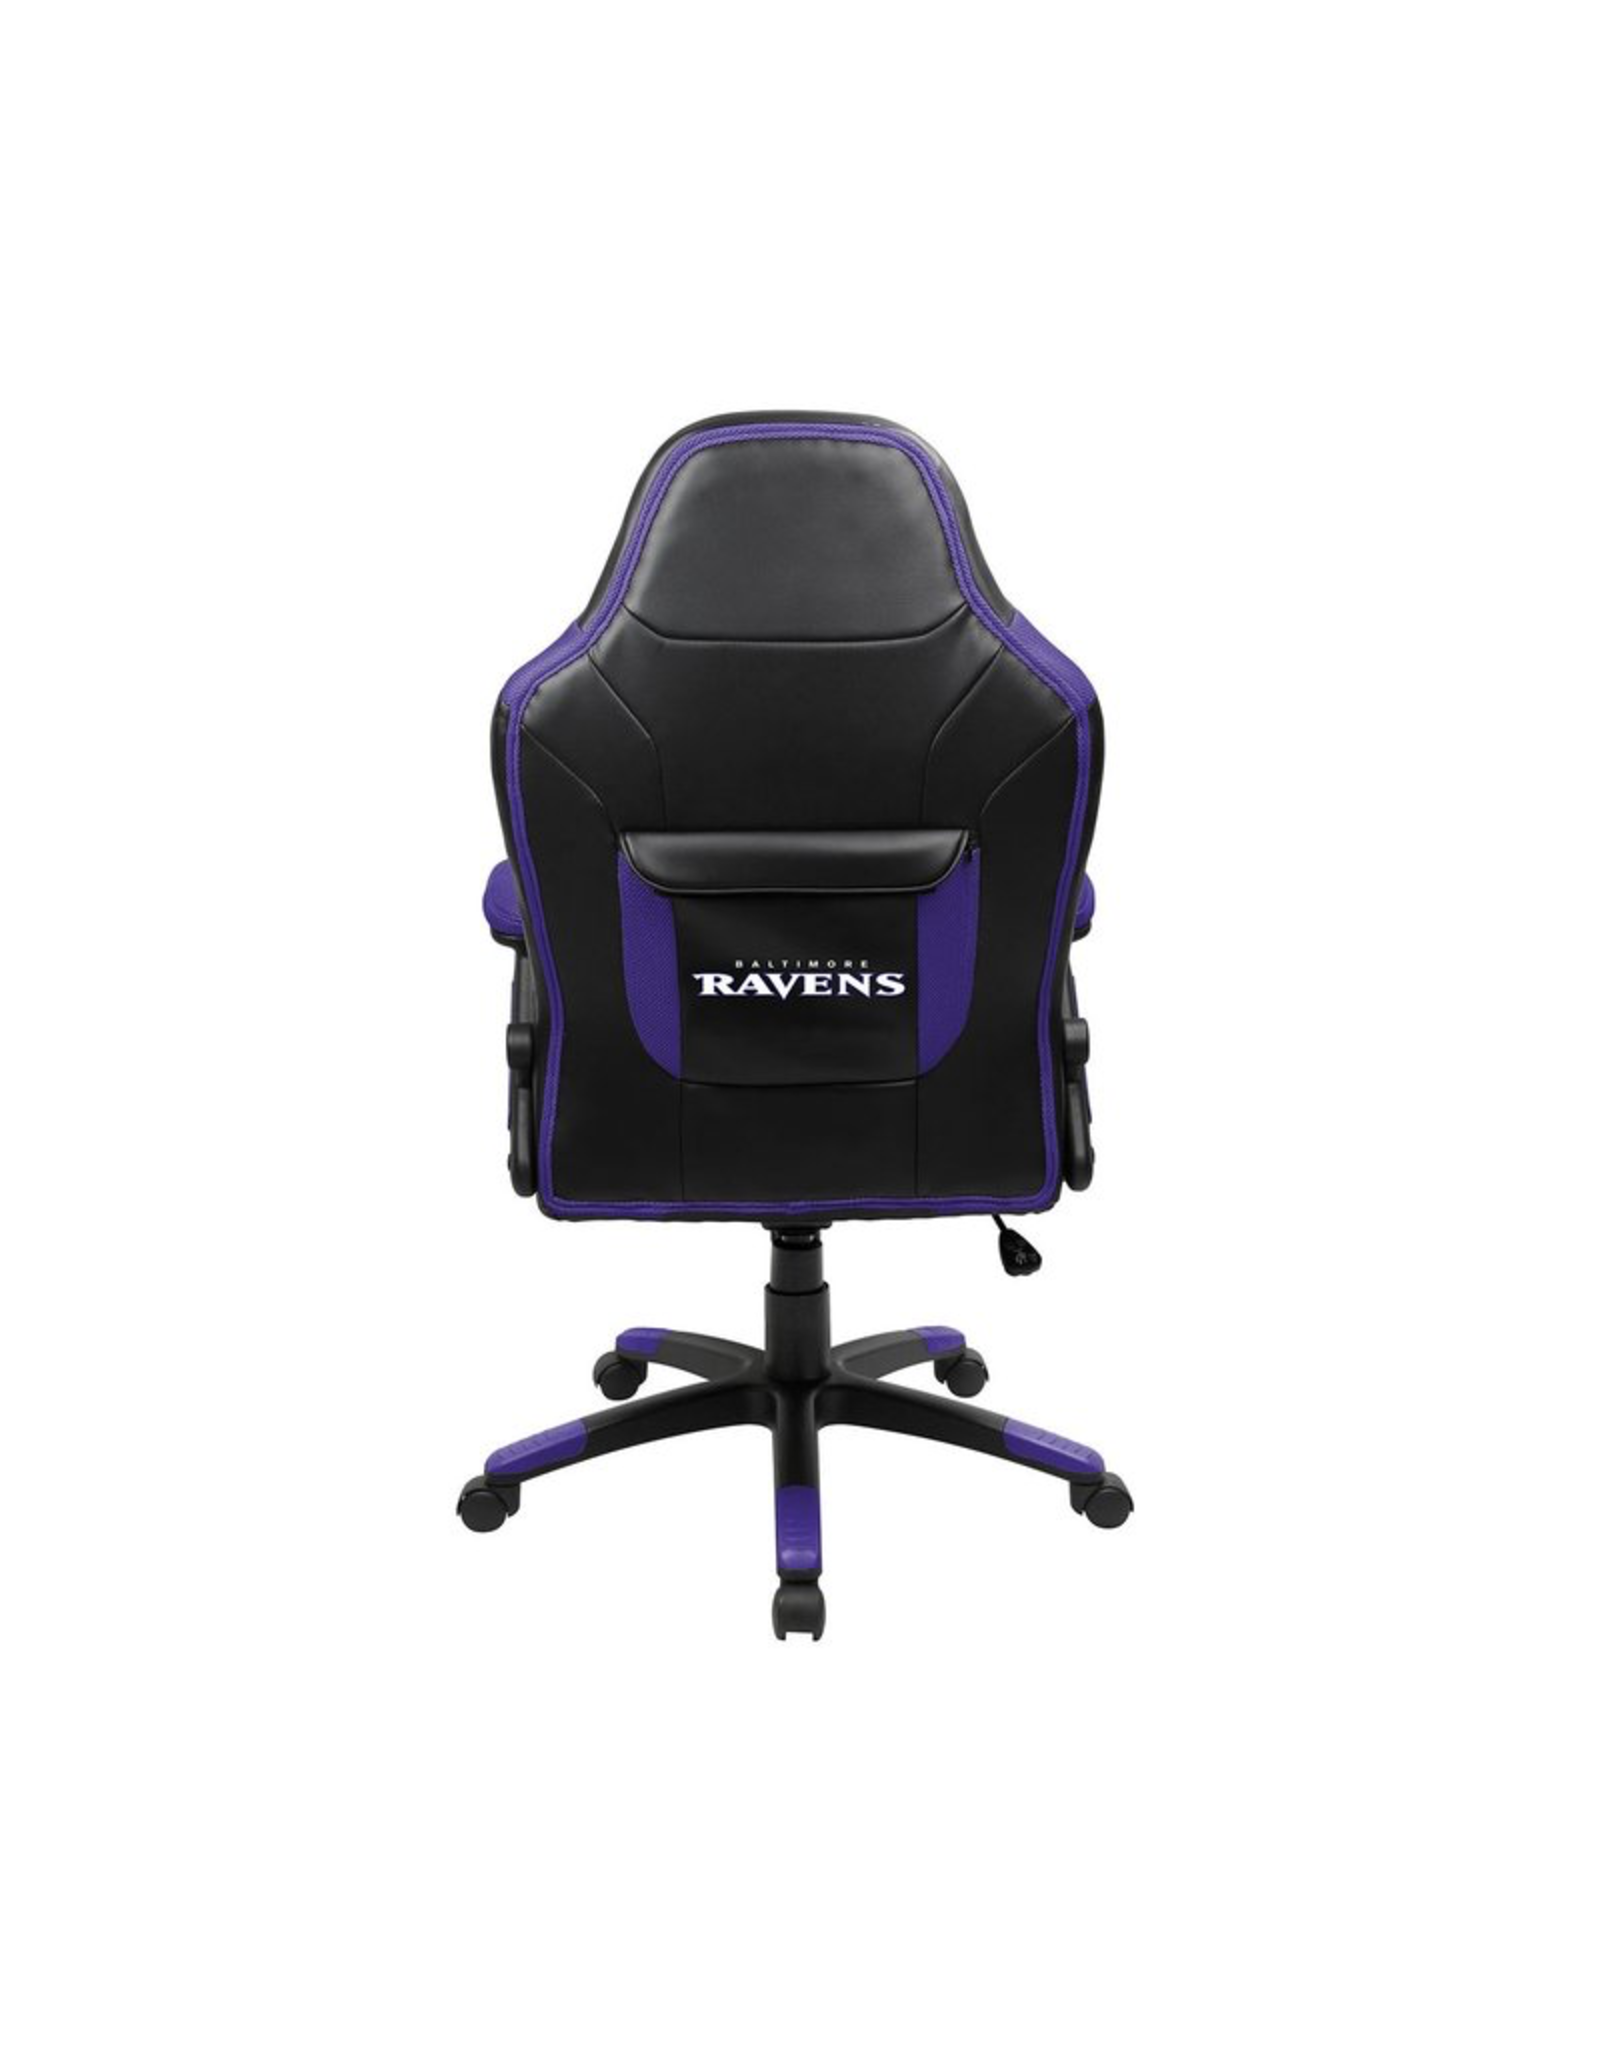 IMPERIAL Baltimore Ravens Oversized Gaming/Office Chair